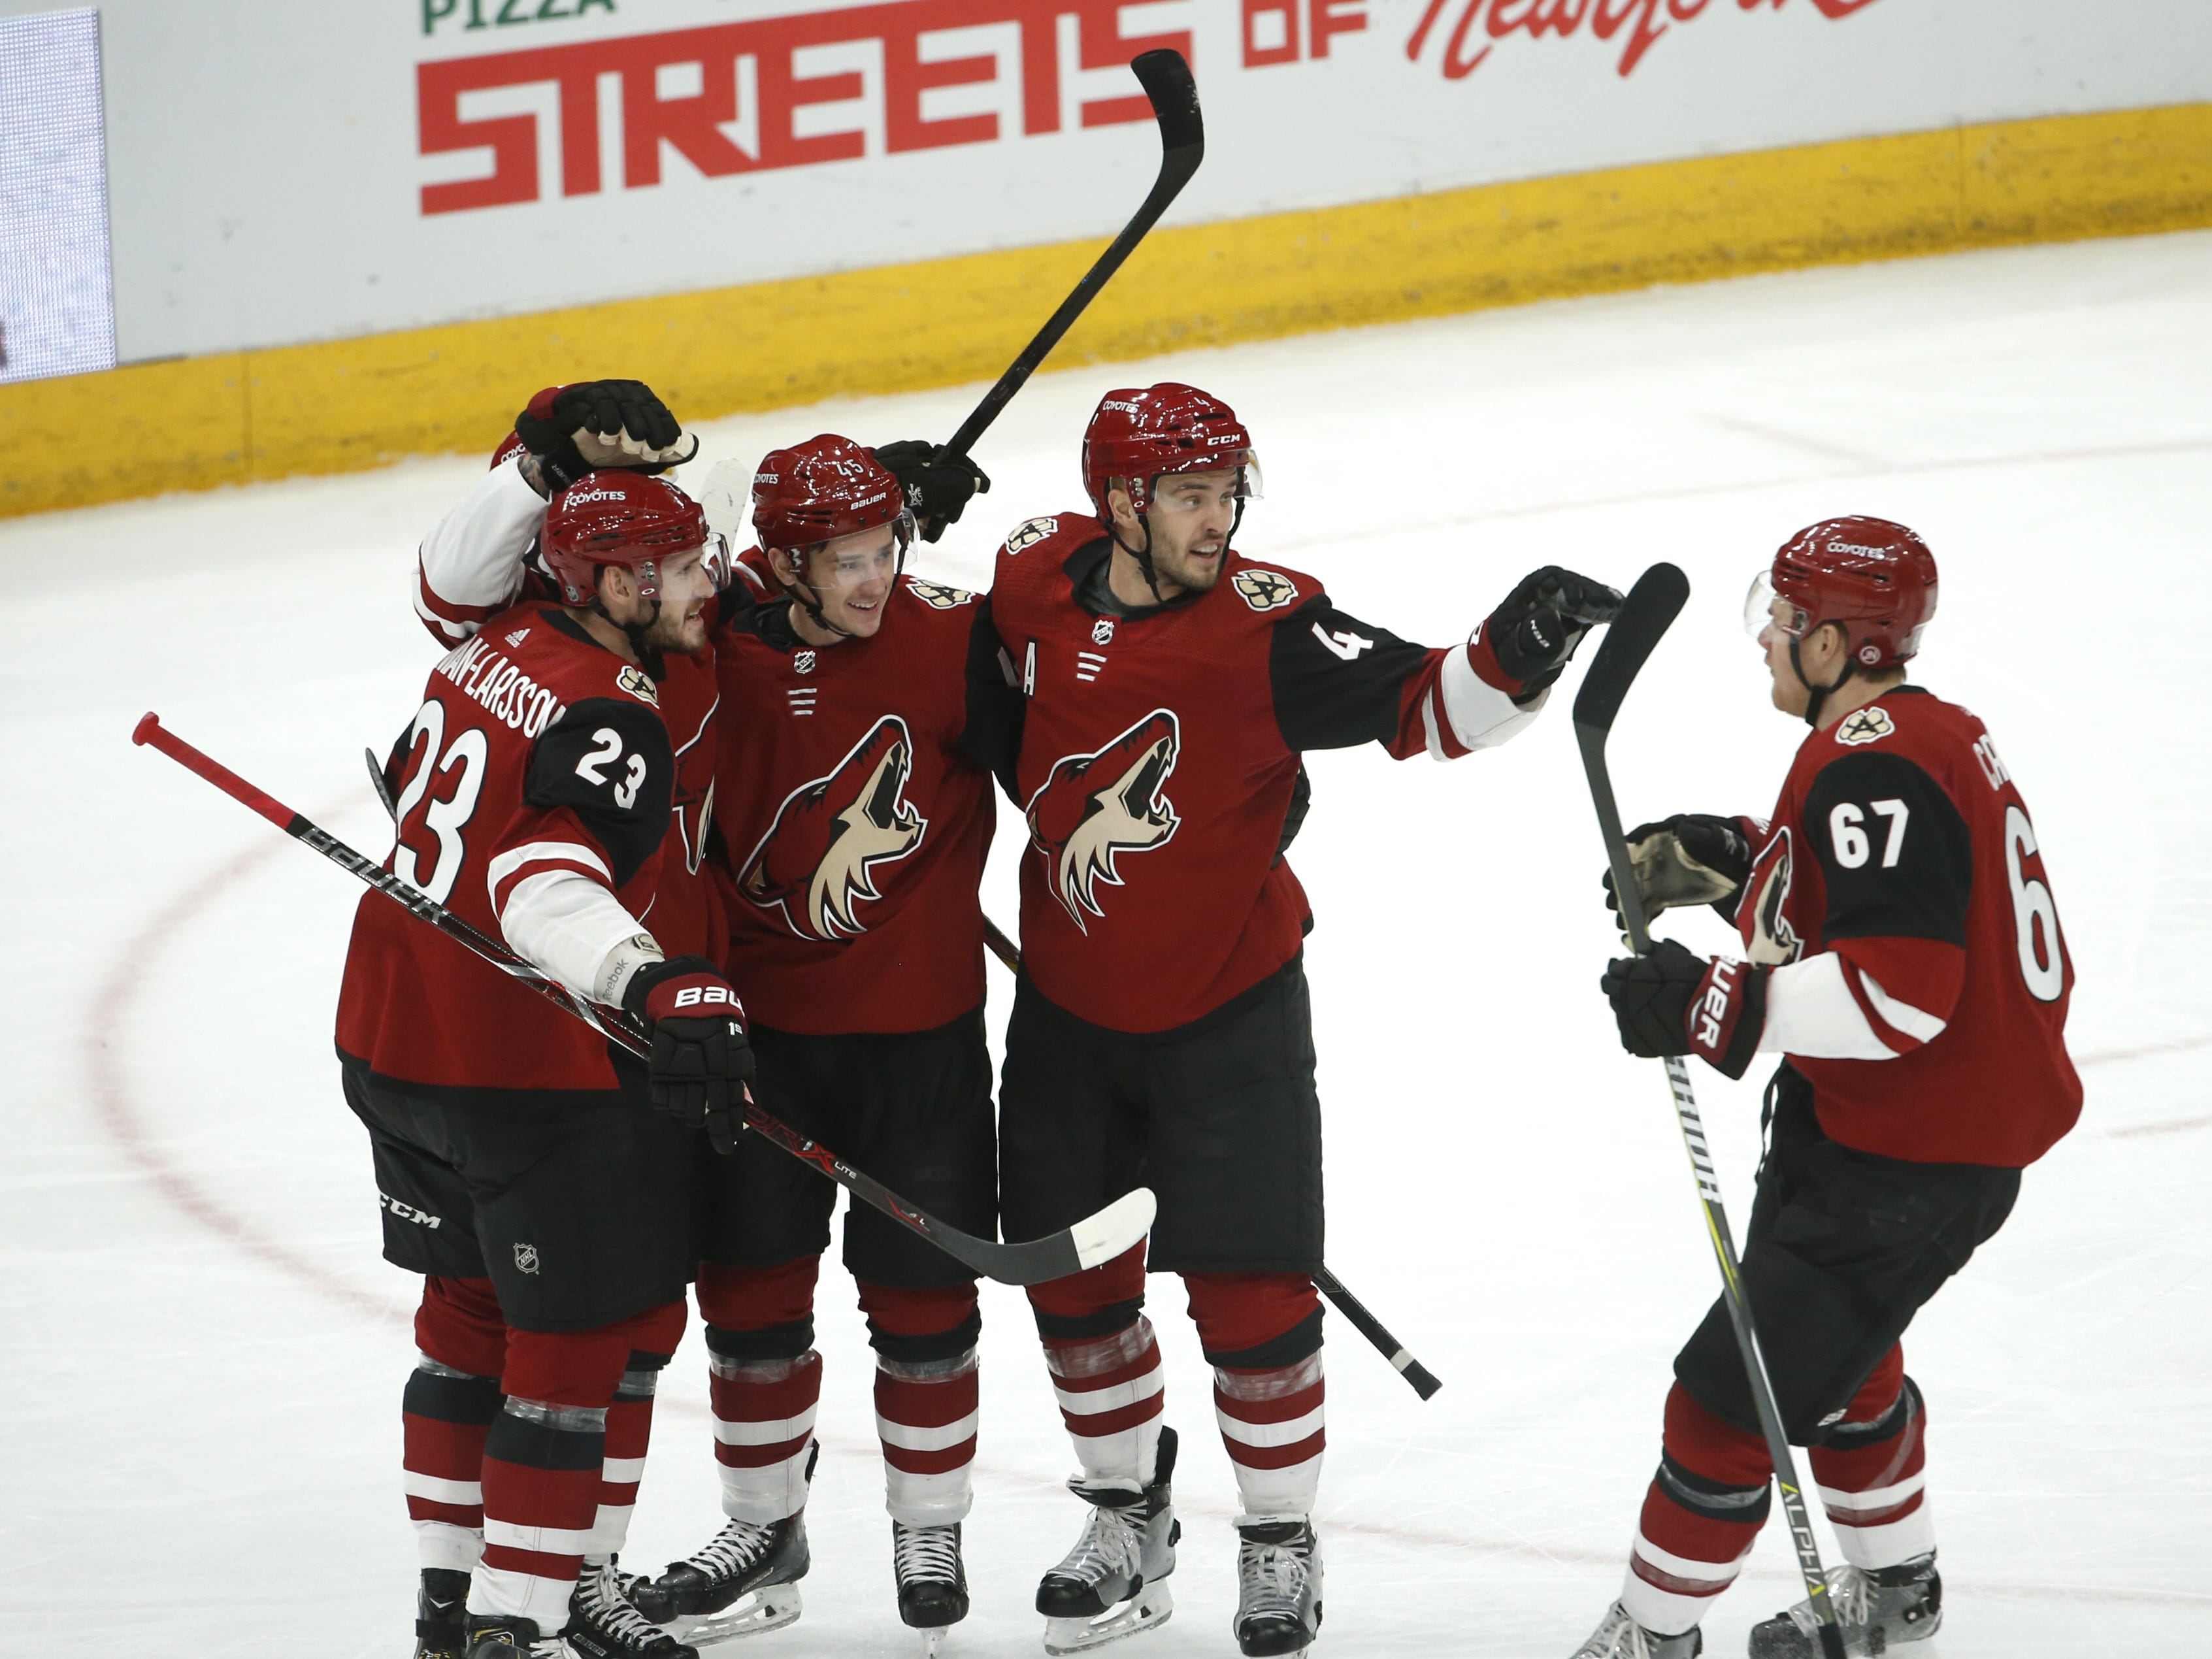 Coyotes' Mario Kempe (29) celebrates scoring with his teammates during the first period against the Rangers at Gila River Arena in Glendale, Ariz. on January 6, 2019.